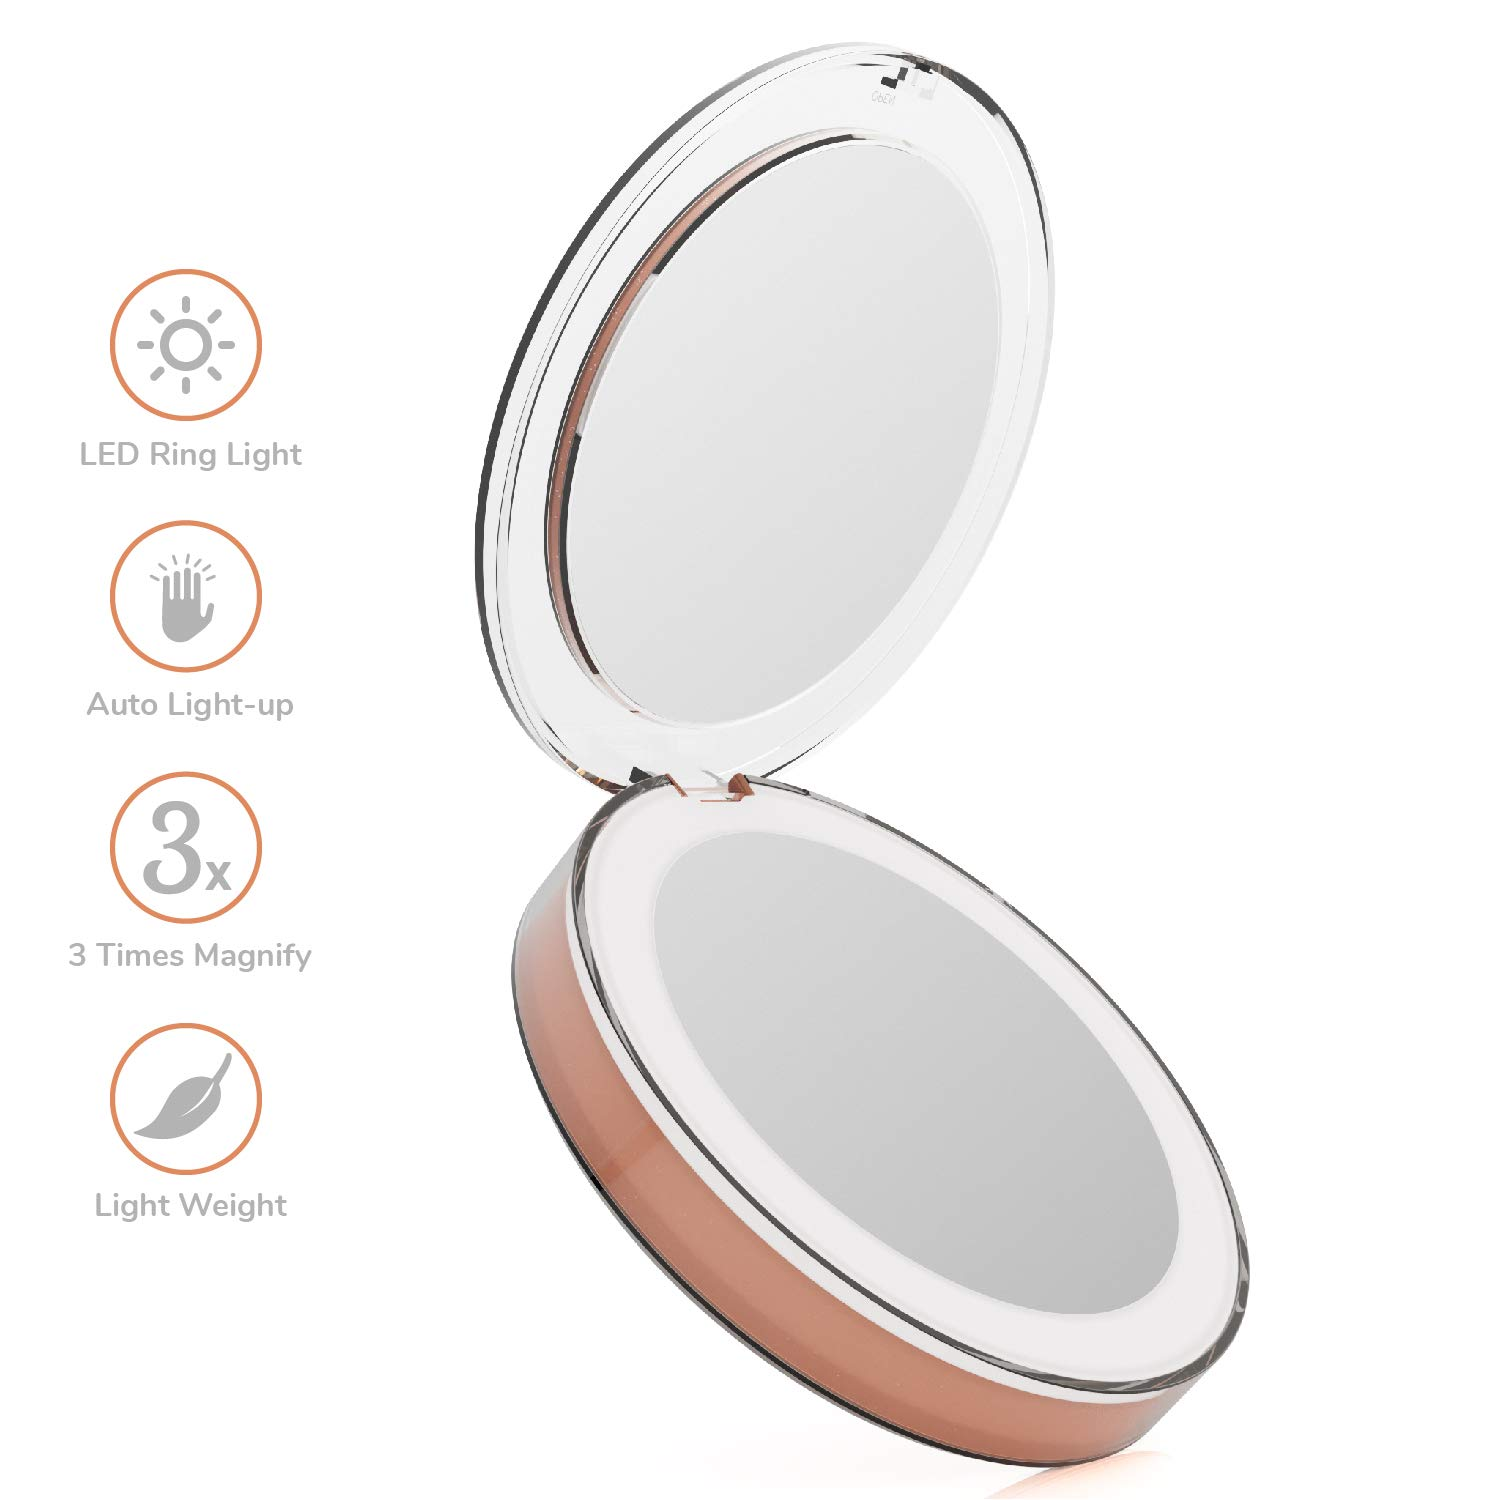 Ustar LED Makeup Mirror Light, 1X 3X Magnification Compact Travel Mirror, USB Rechargeable LED Handheld Cosmetic Mirror, Large 3.34 Illuminated Folding Pocket Mirrors – Pink